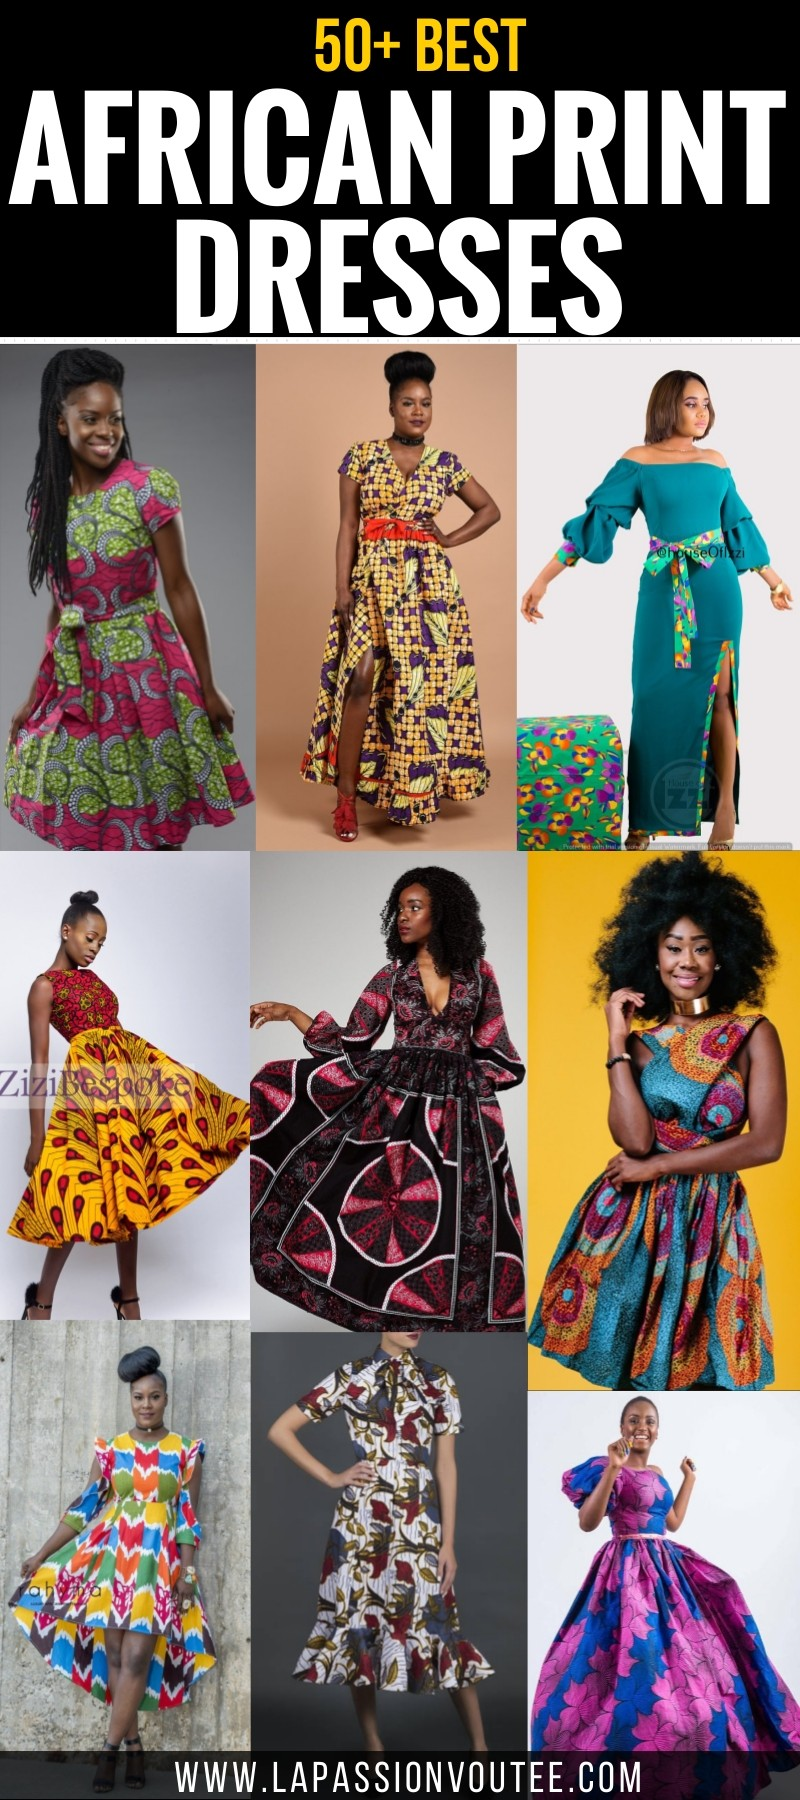 50 Best African Print Dresses Where To Get Them